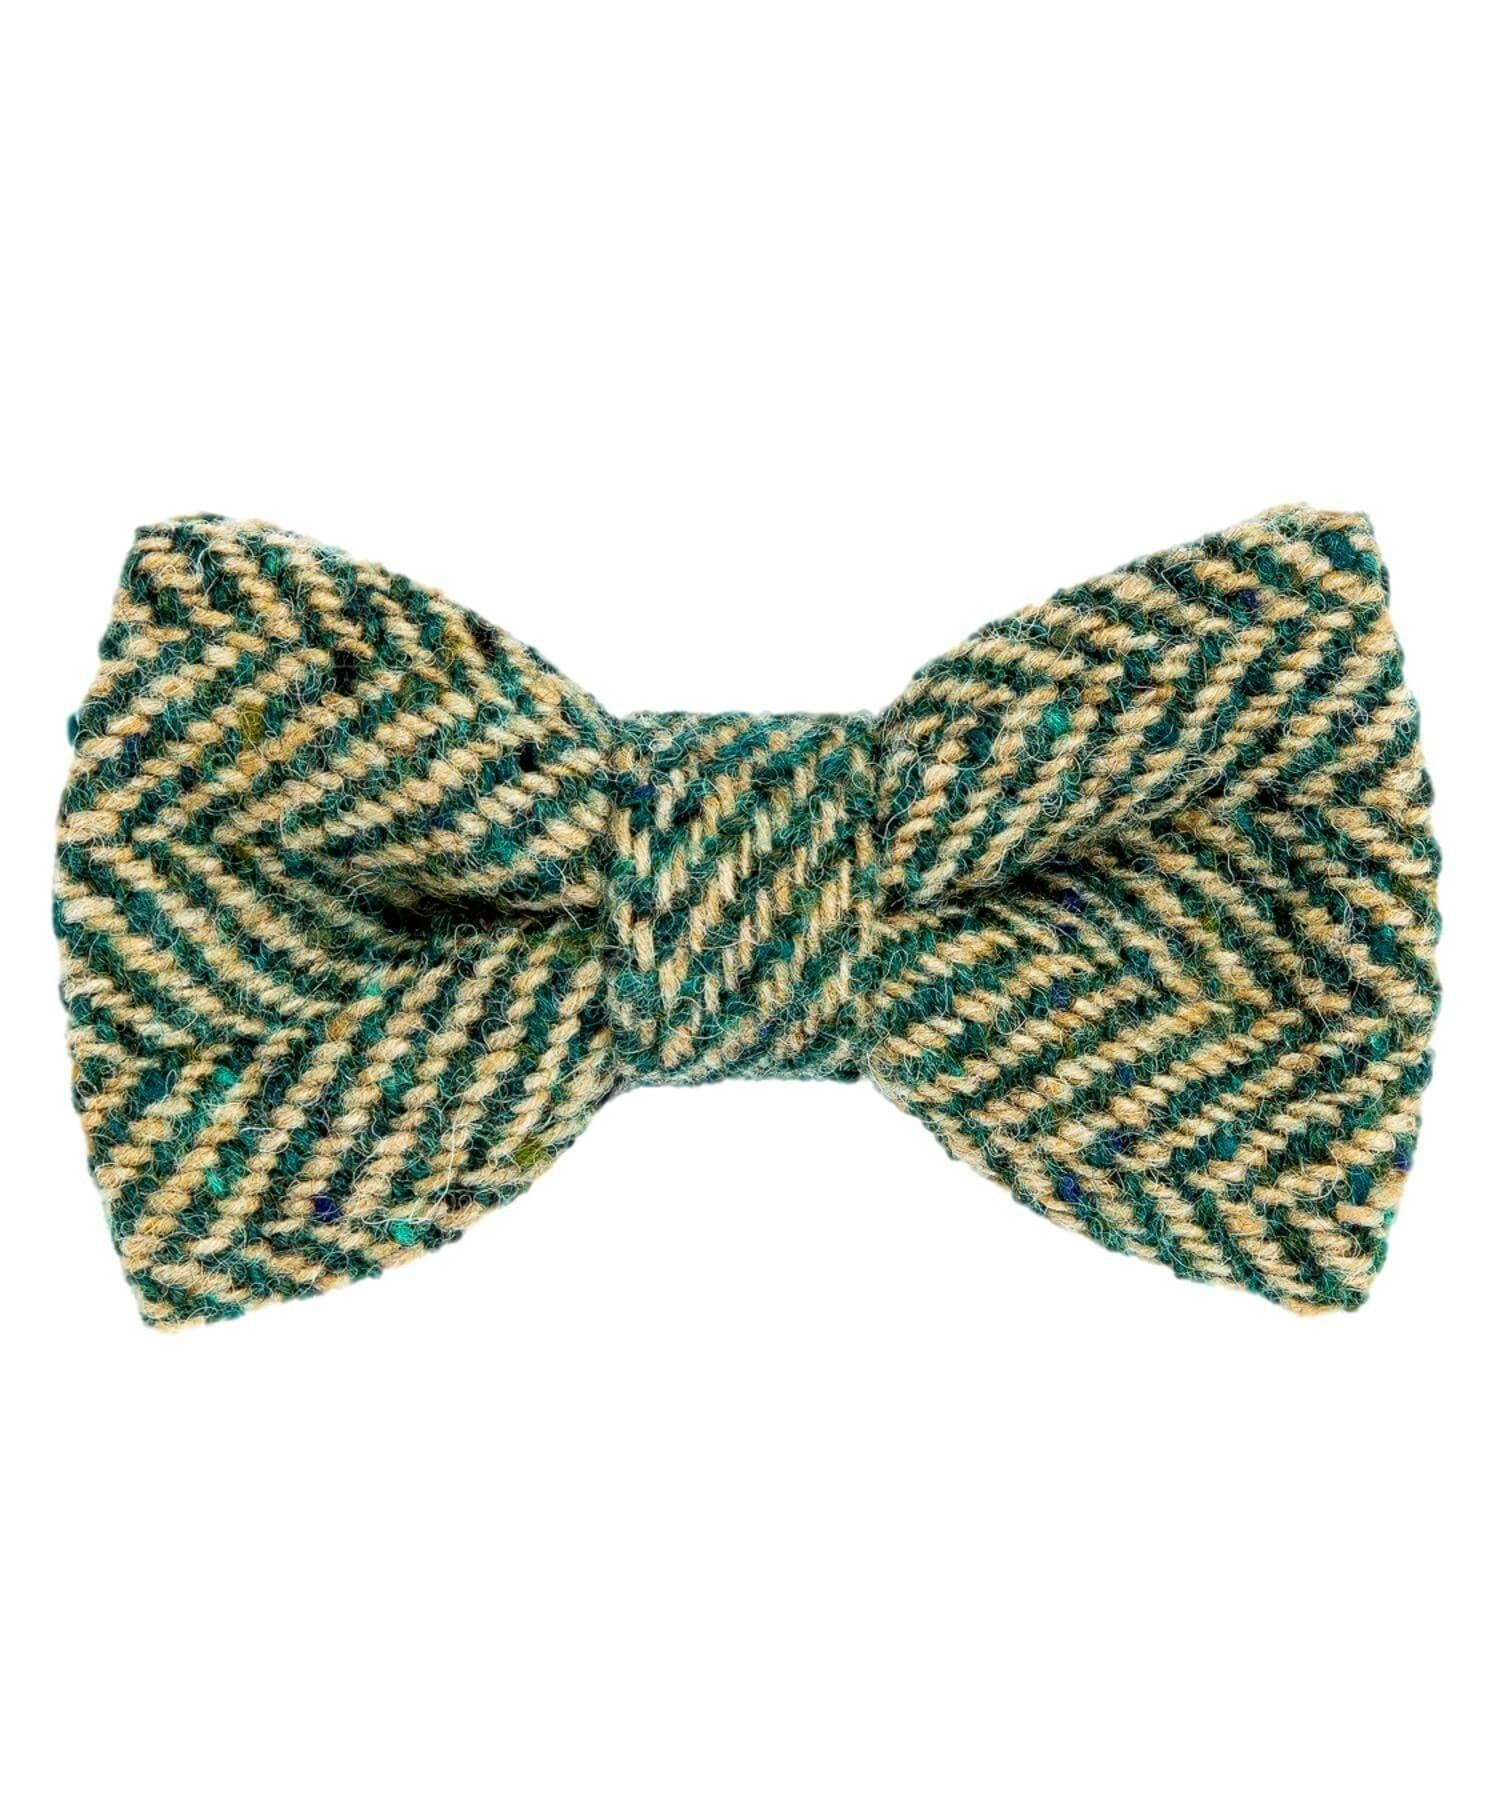 Donegal Tweed Bow Tie - Pine - [Orwell & Browne] - Mens Accessories - Irish Gifts